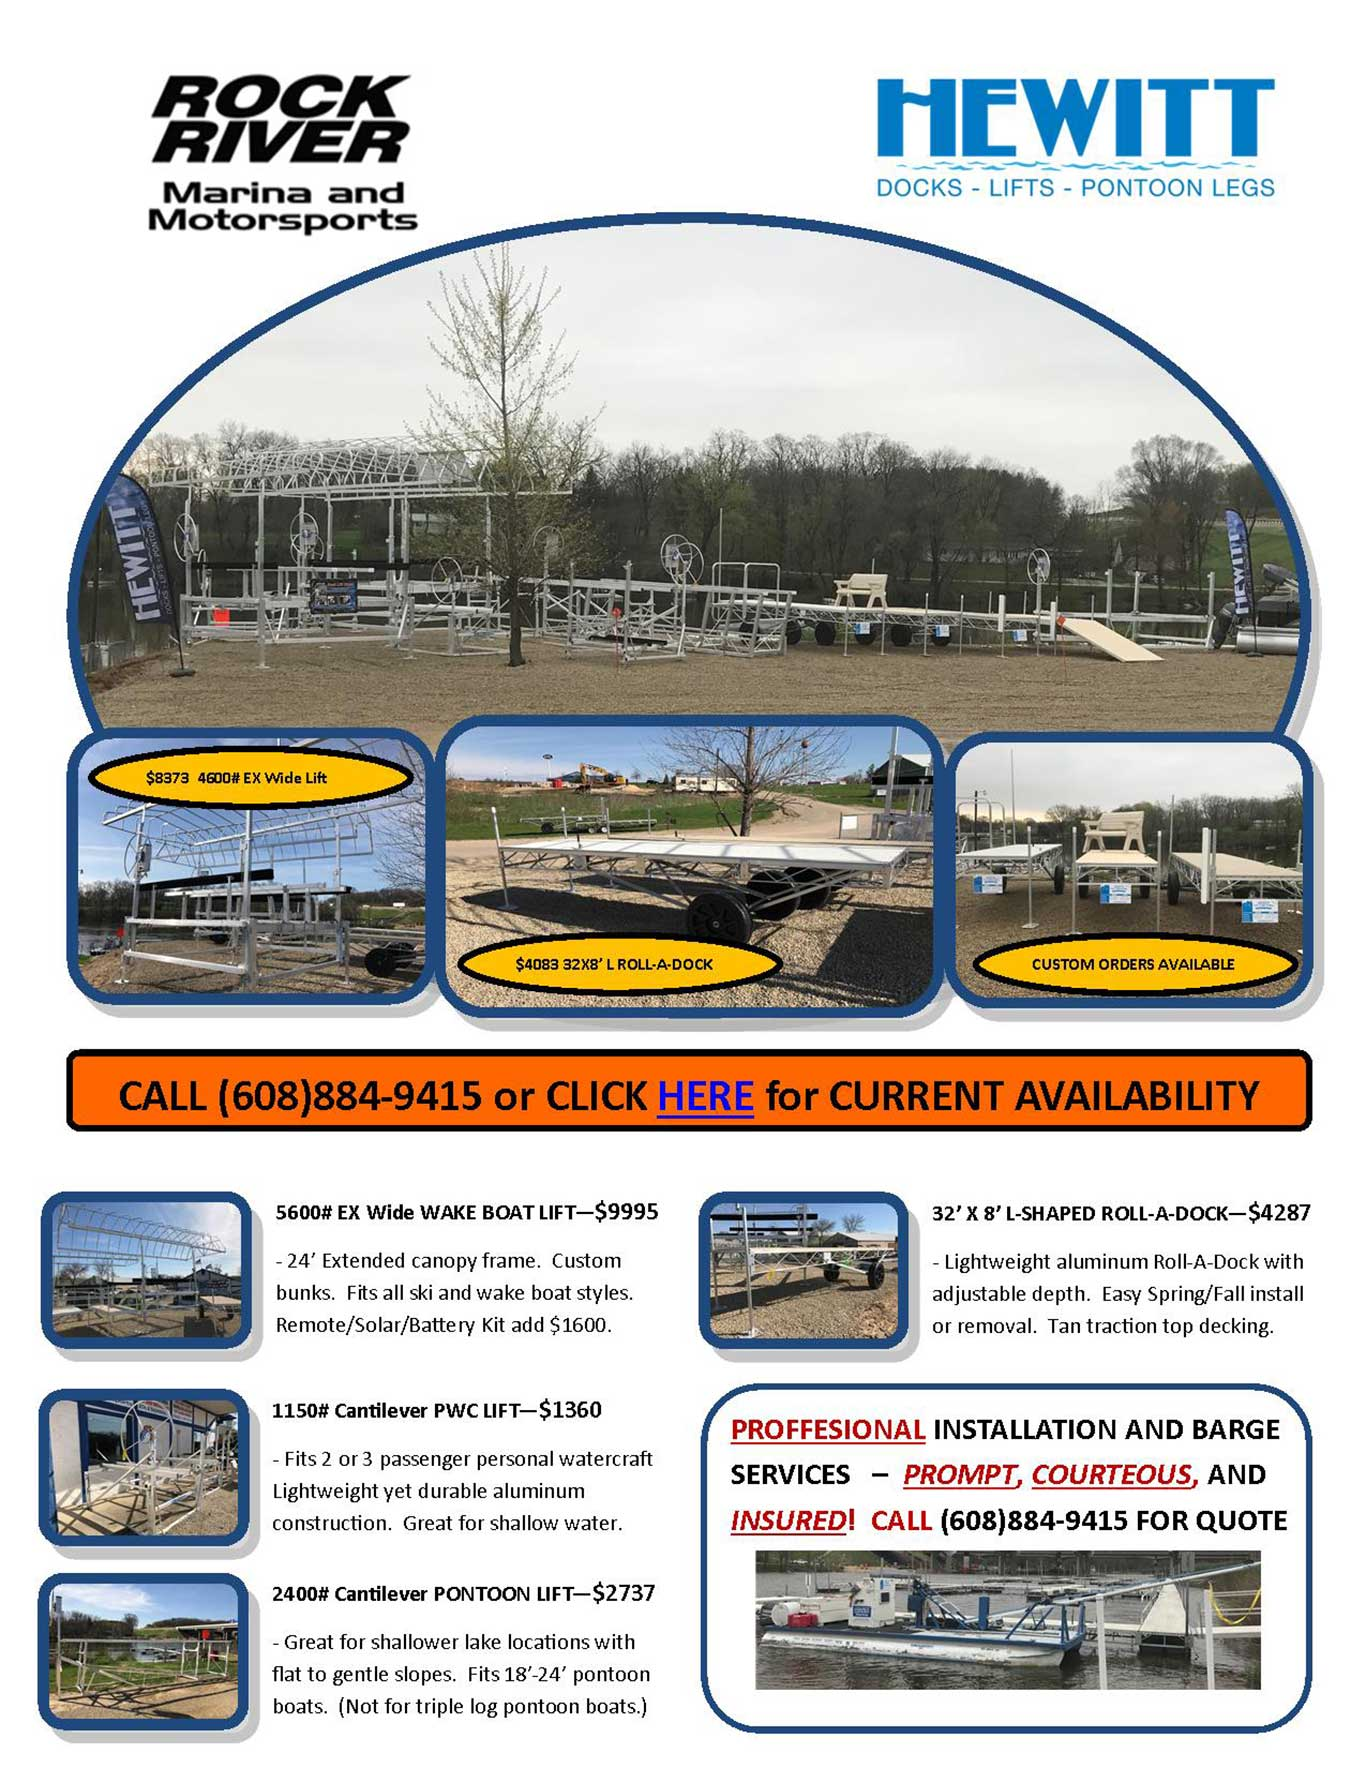 Rock River Marina | Dock and Lift | Edgerton, WI